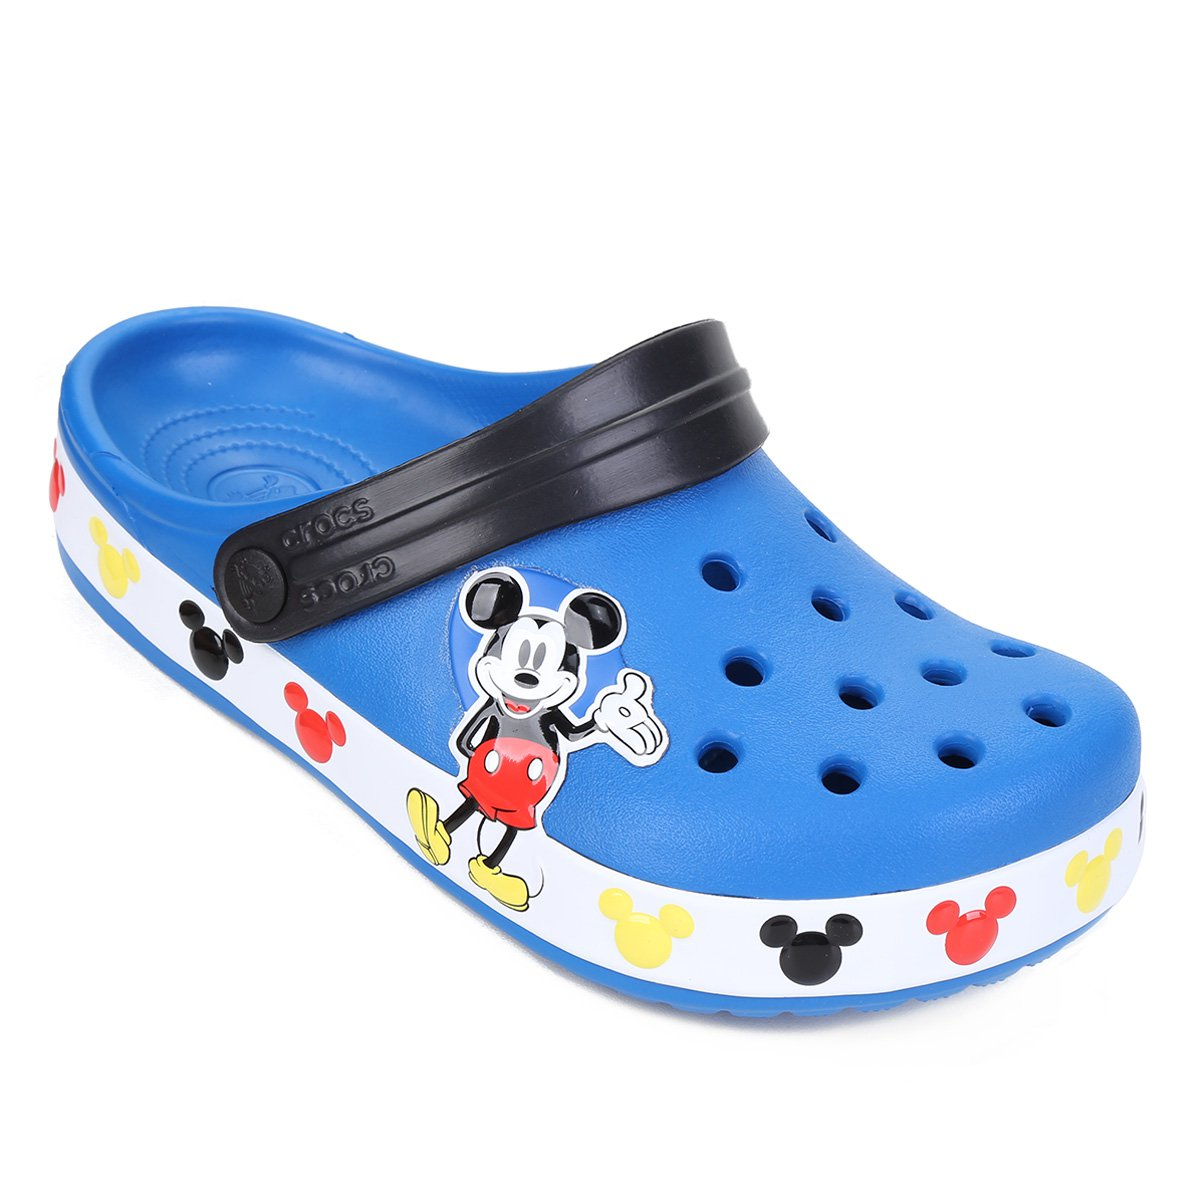 NEW Disney Baby Mickey Mouse Slippers in Blue